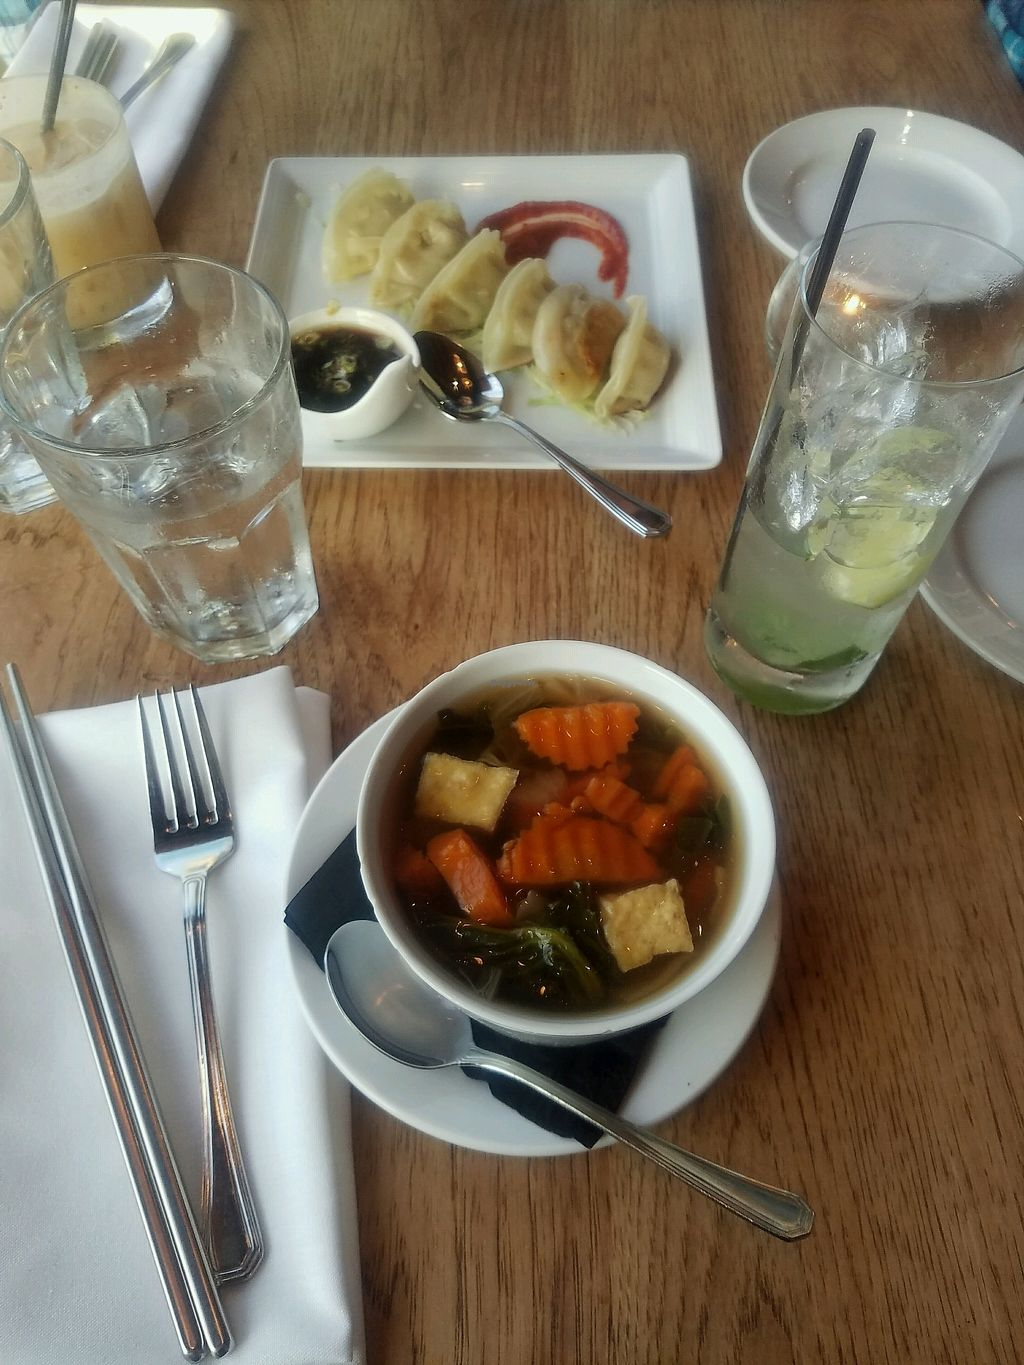 "Photo of Green Elephant Vegetarian Bistro & Bar  by <a href=""/members/profile/ehubert"">ehubert</a> <br/>Vegetable soup and dumplings <br/> November 2, 2017  - <a href='/contact/abuse/image/64198/321284'>Report</a>"